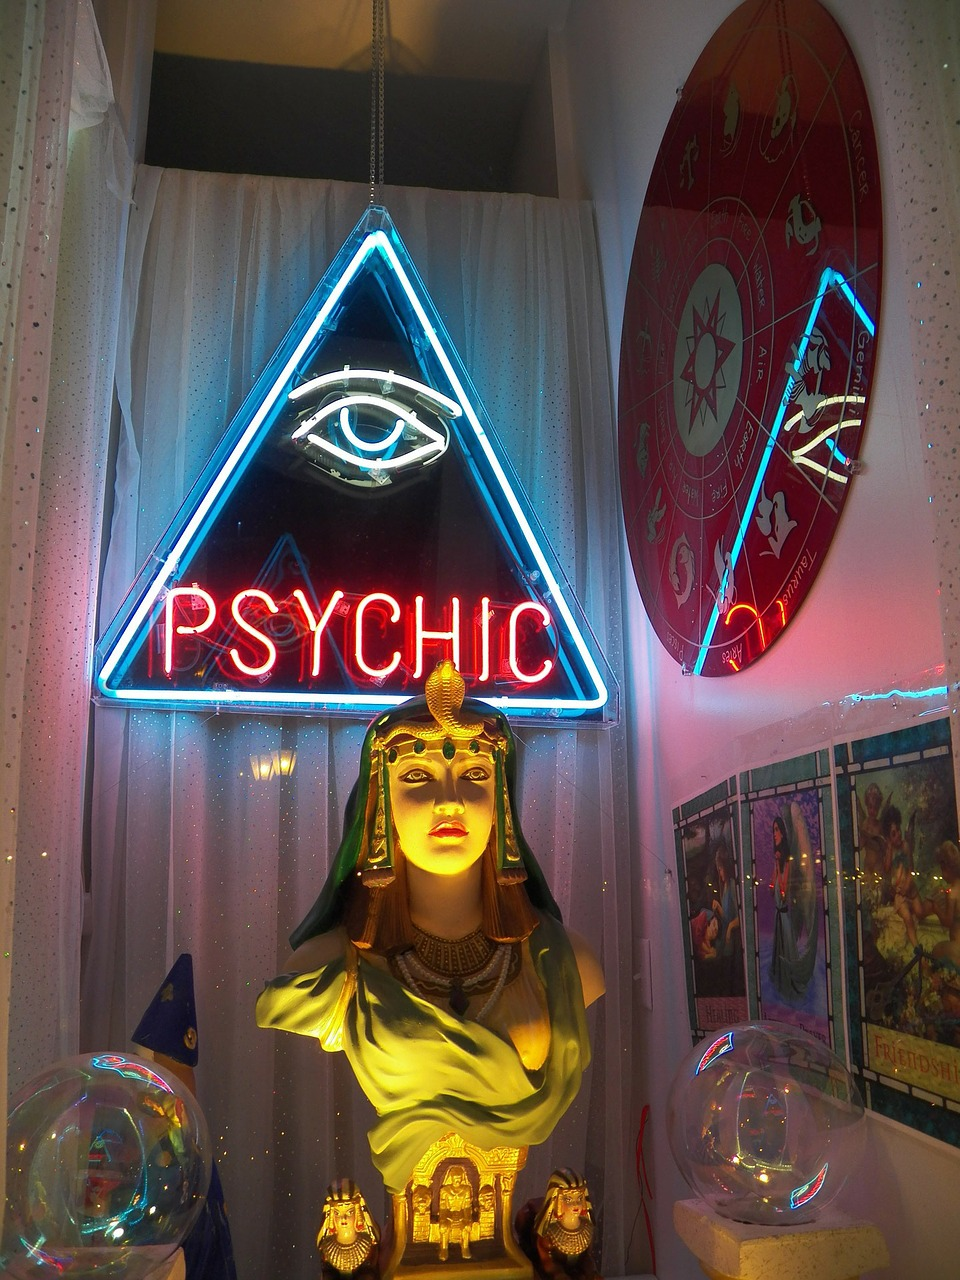 Psychic sign and paraphernalia.